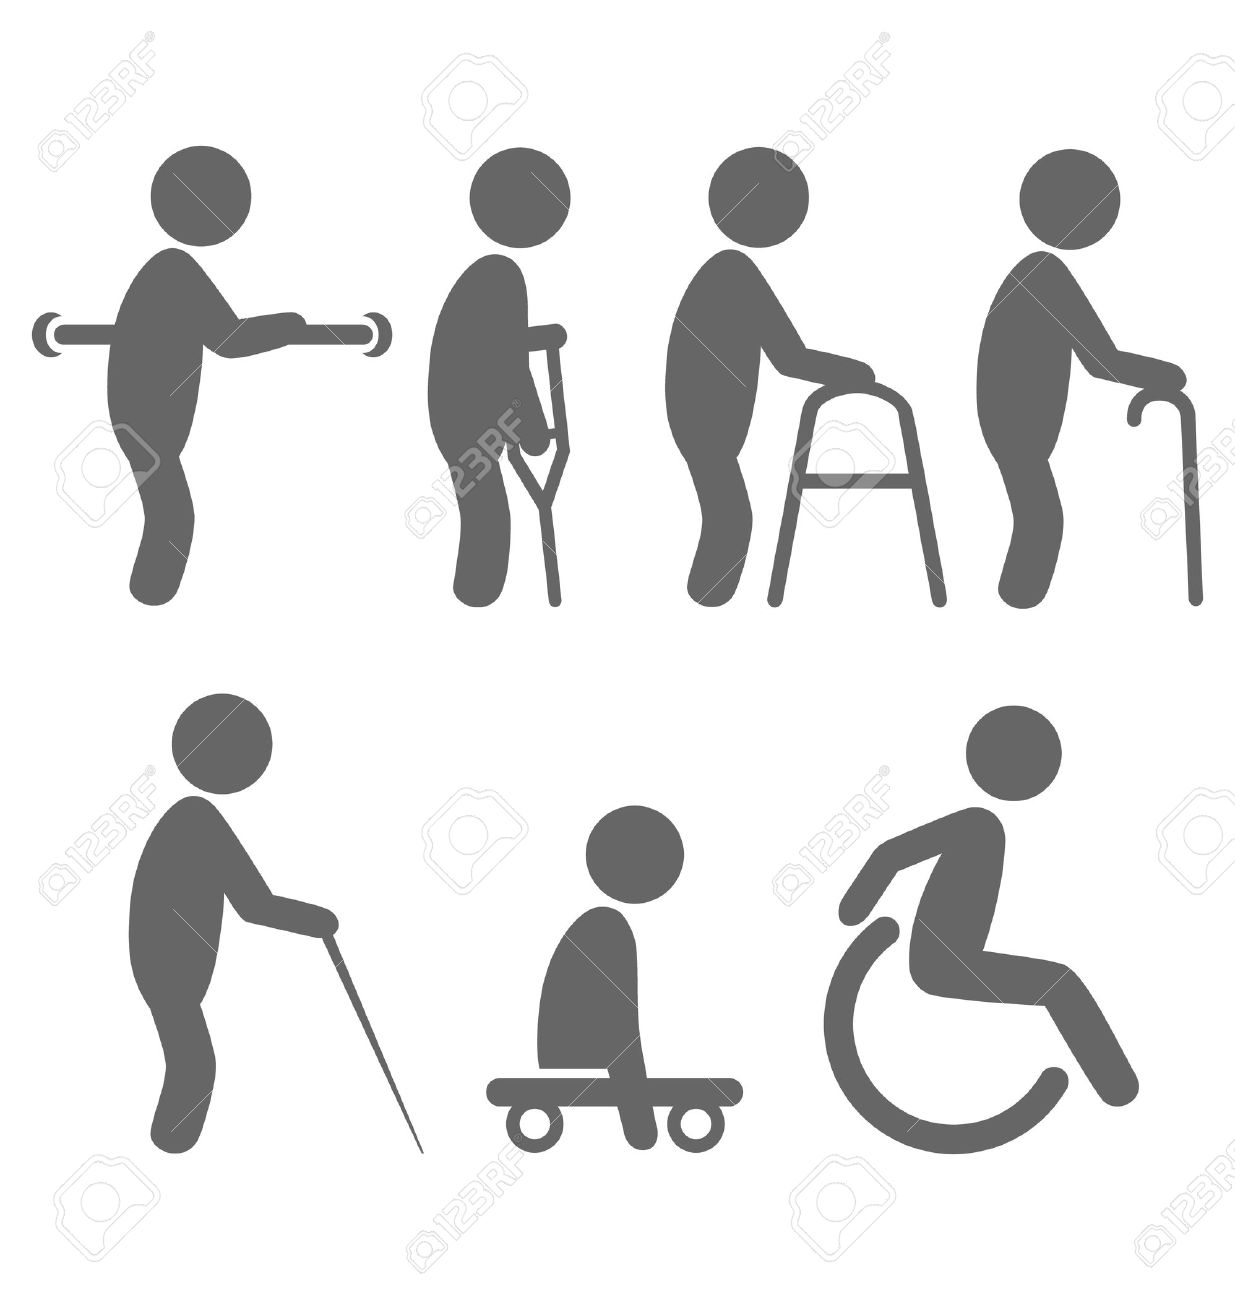 Disability people pictograms flat icons isolated on white background - 38424894